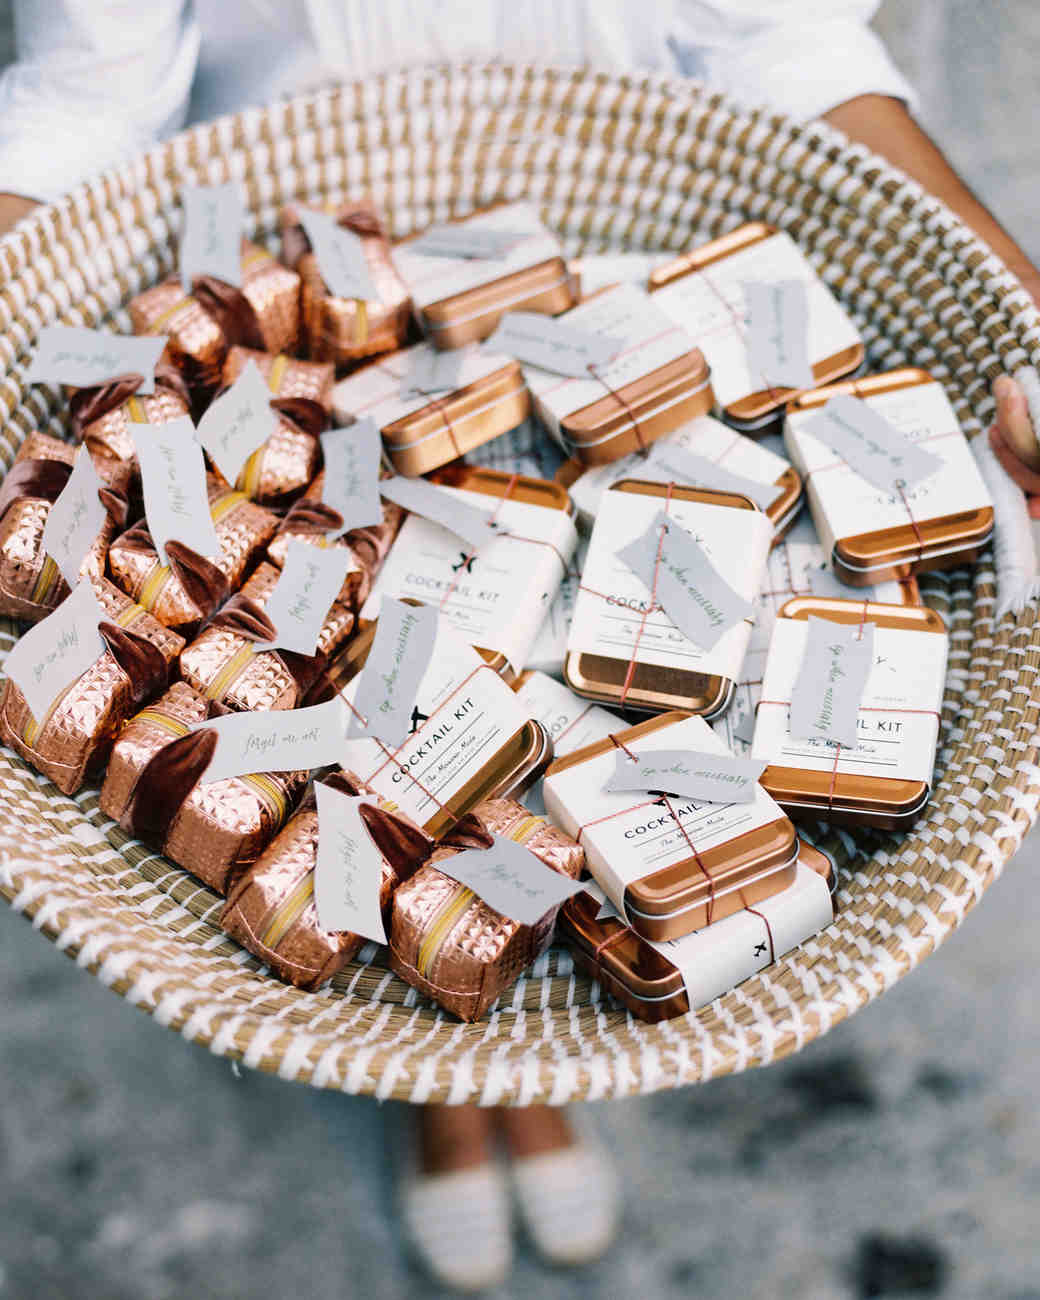 Unique Ideas For Wedding Favours: 50 Creative Wedding Favors That Will Delight Your Guests